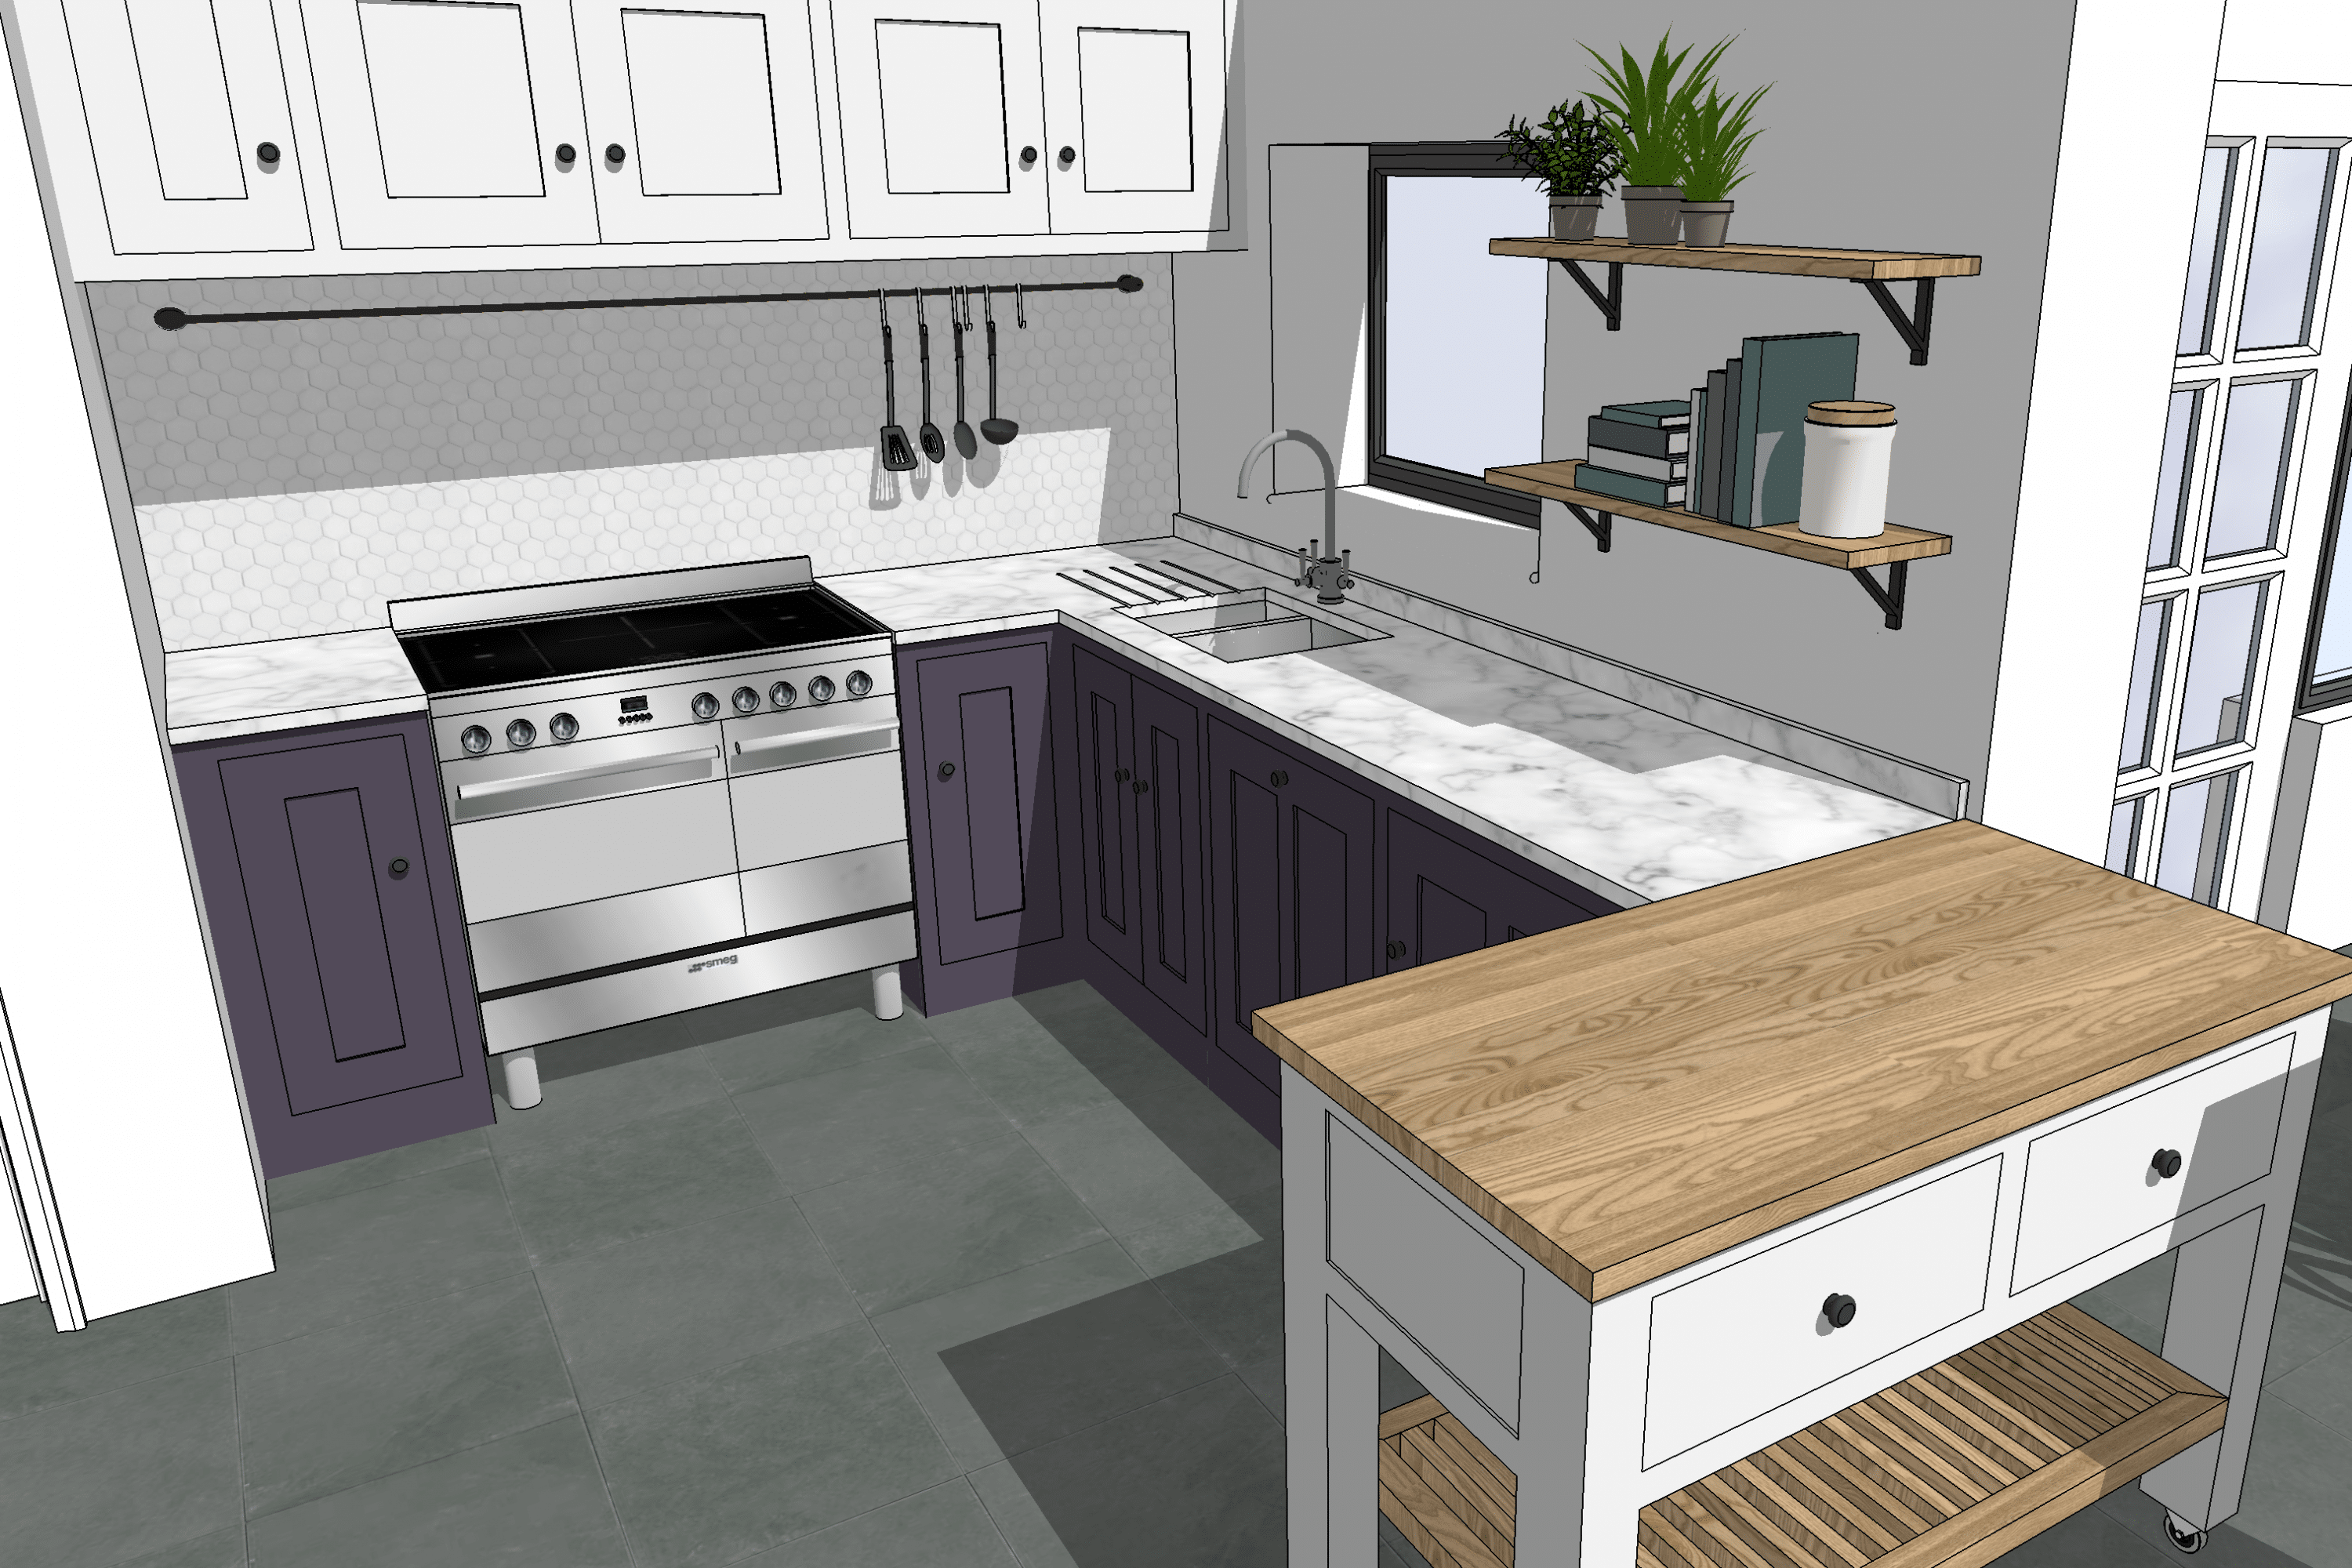 kitchen example